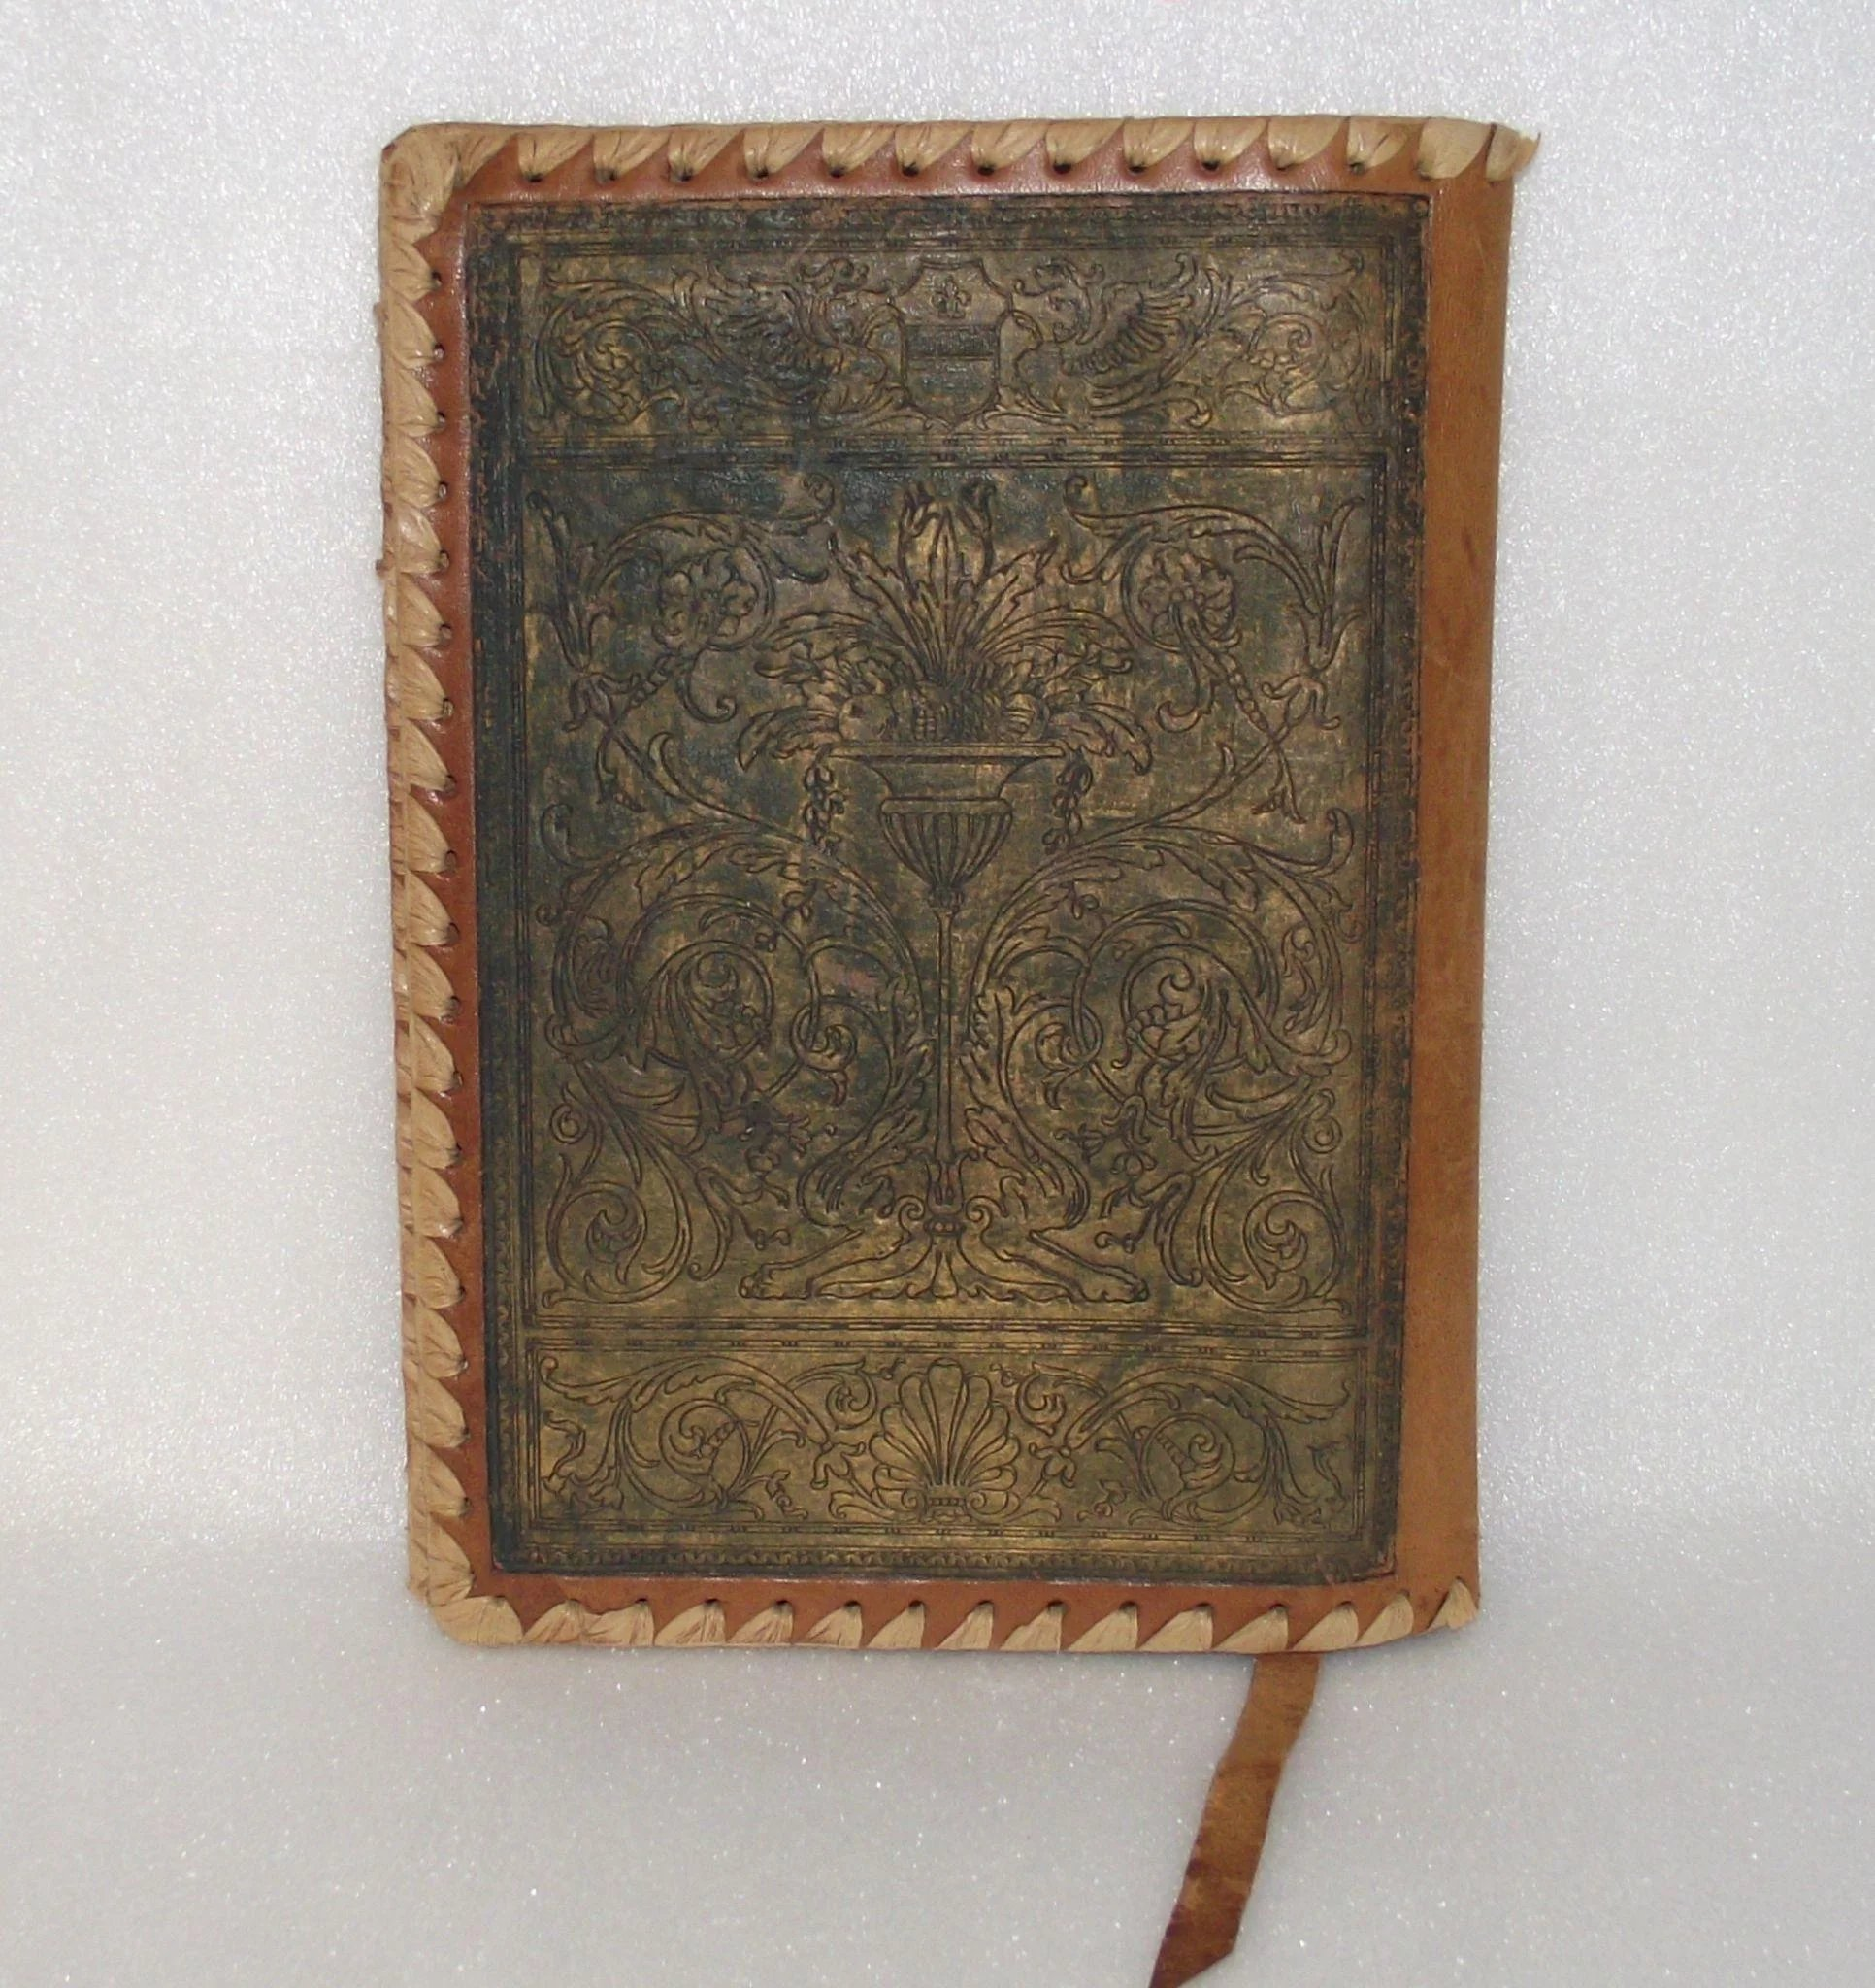 Vintage Leather Book Cover : Vintage leather book cover hand made printed bible